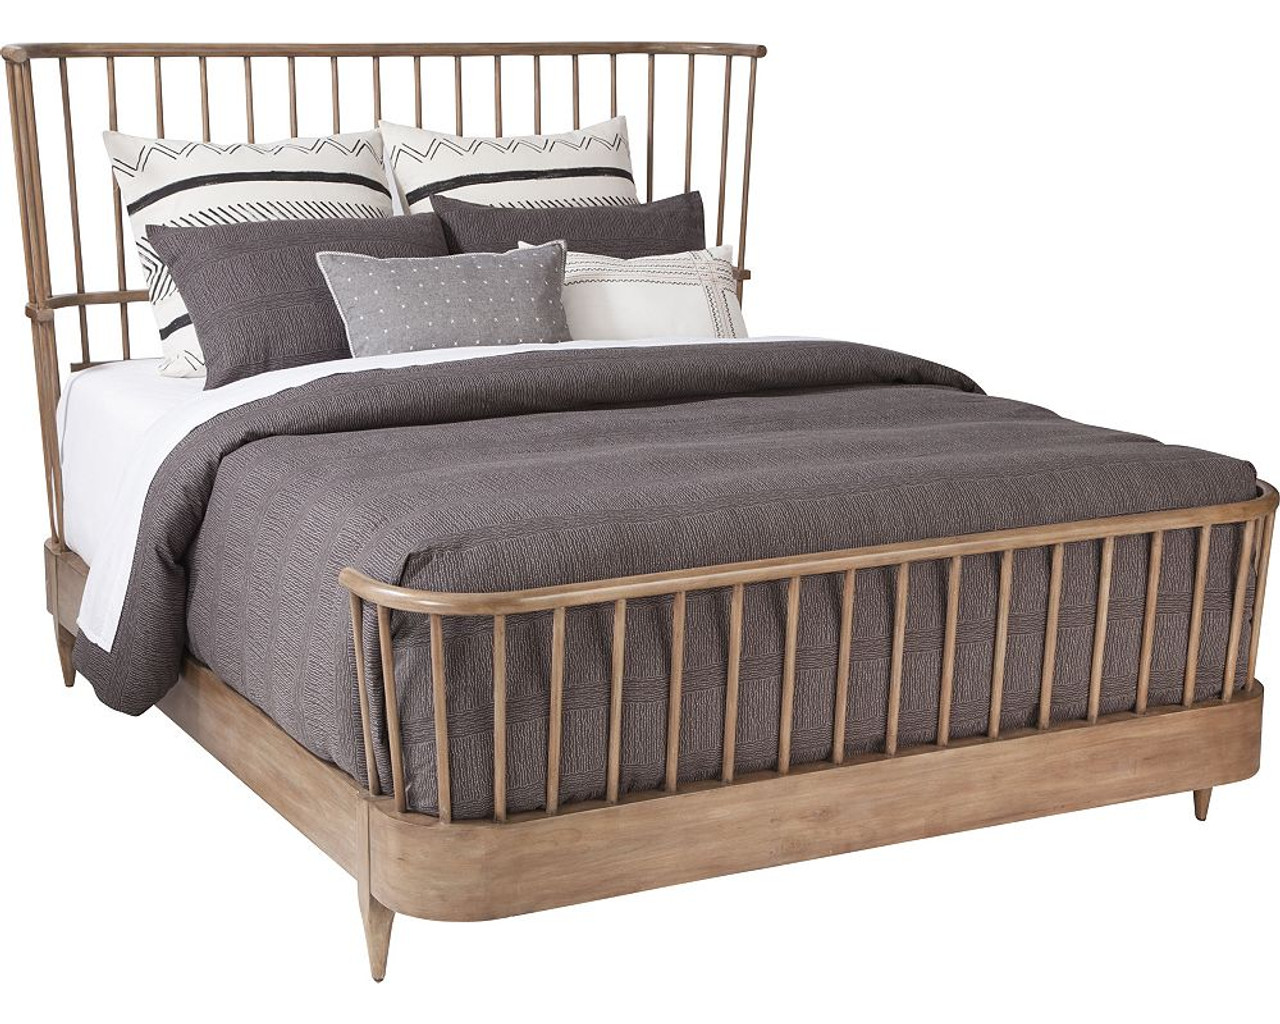 Charmant Cordell Spindle Bed